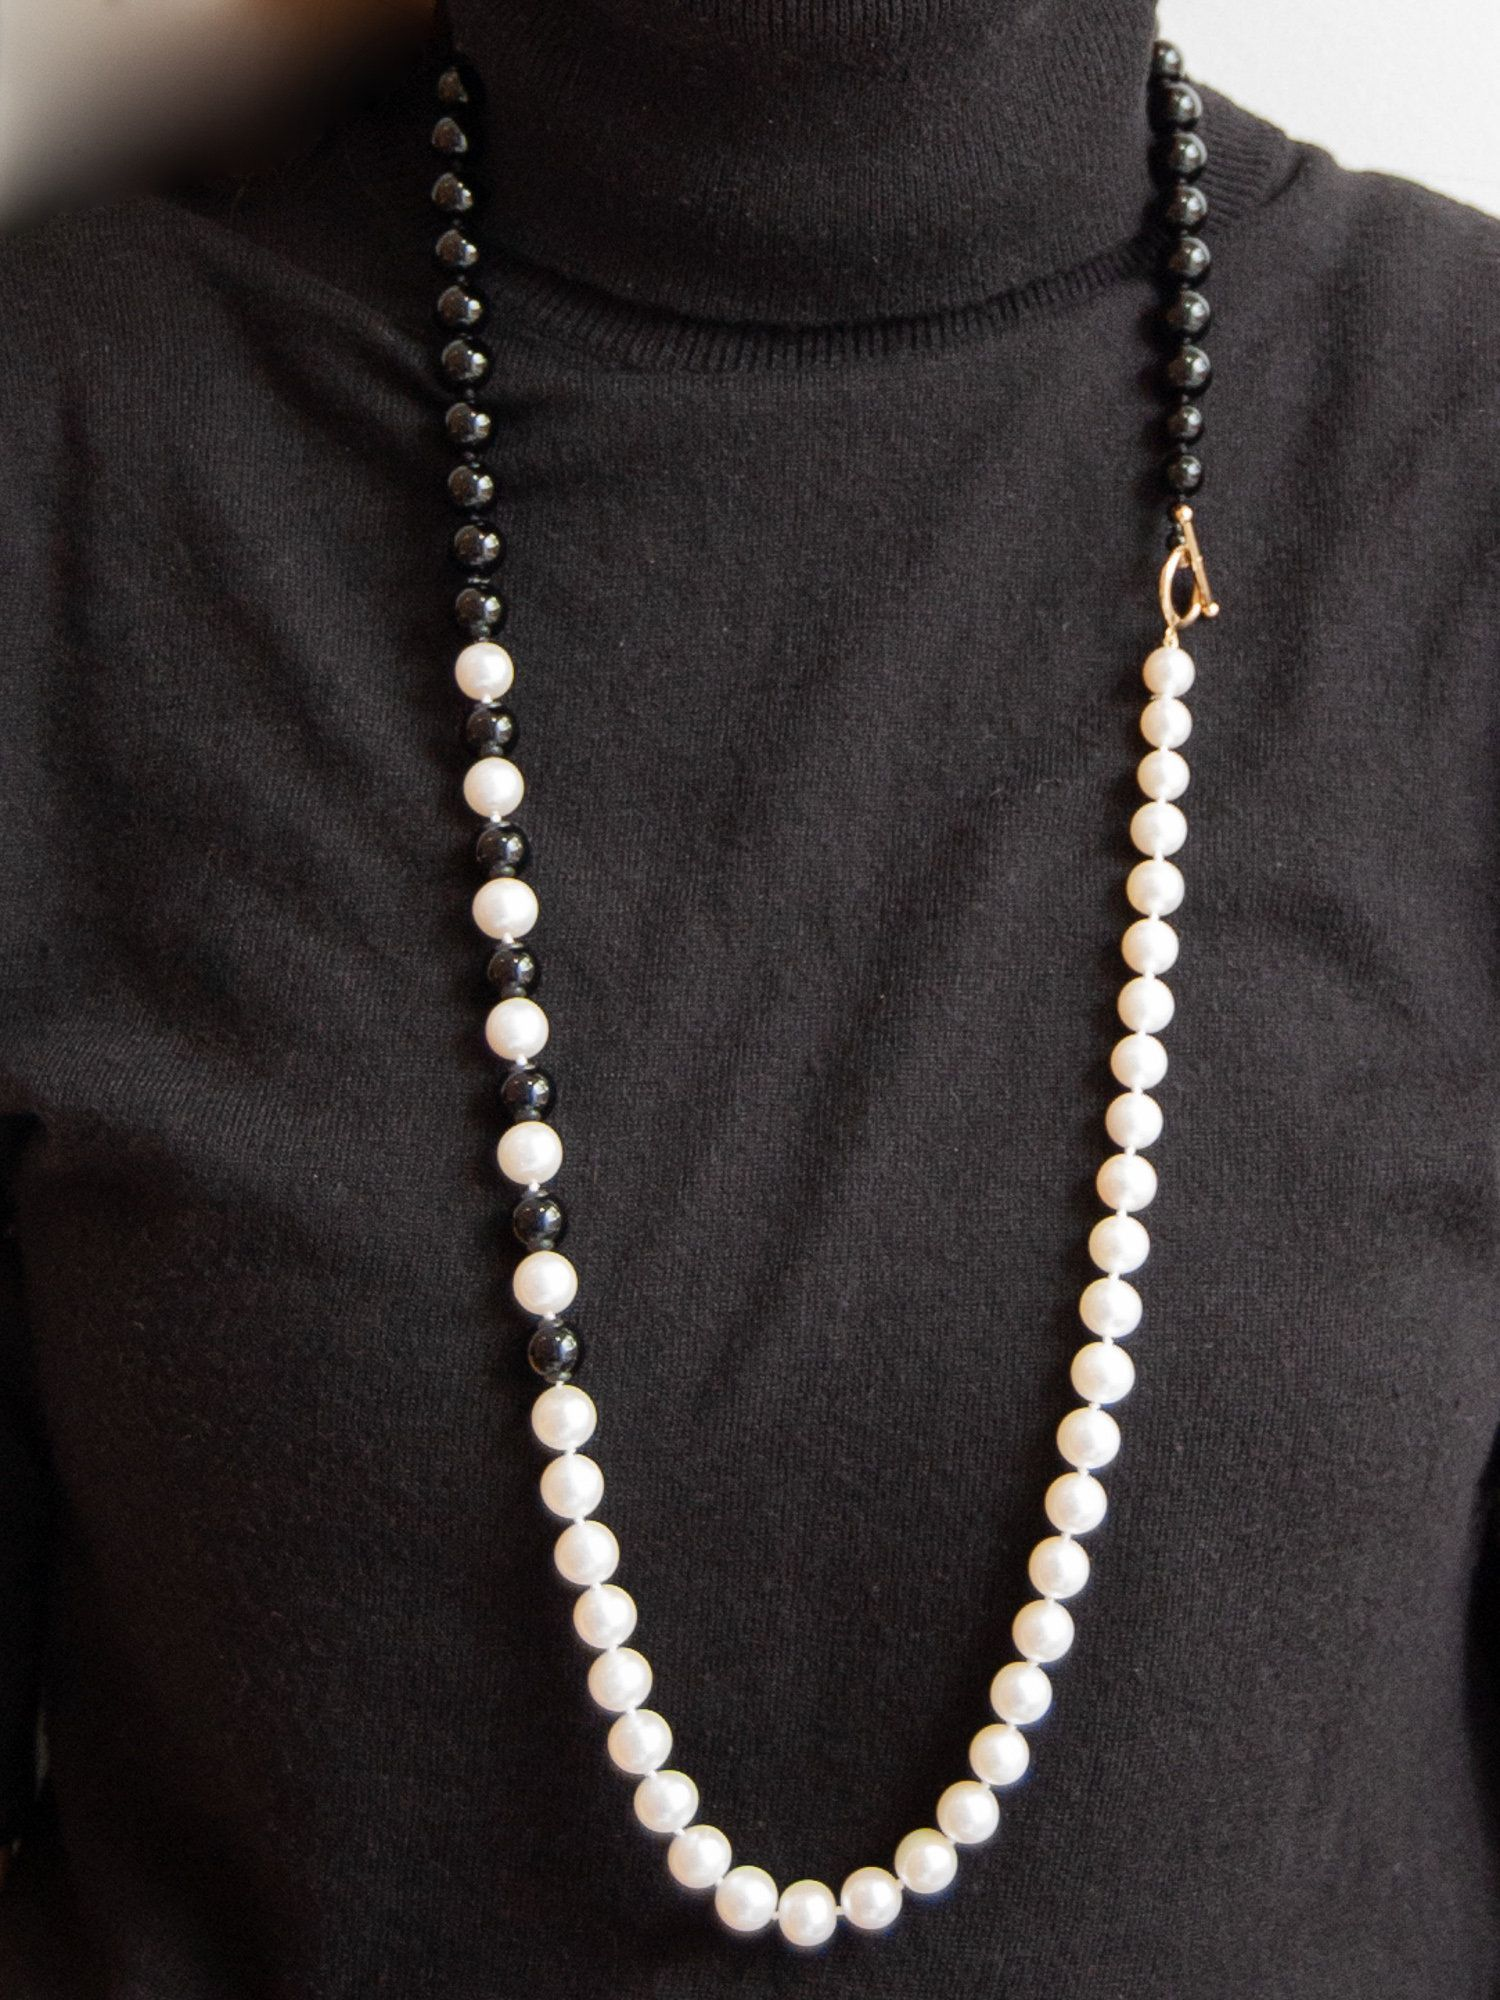 Geometry in Motion! Smashing Necklace of Large Lustrous 10.4mm Freshwater Cultured Pearls &Fine Black Onyx with 14K toggle catch measuring 34.5 inches. in Motion! Smashing Necklace of Large Lustrous 10.4mm Freshwater Cultured Pearls &Fine Black Onyx with 14K toggle catch measuring 34.5 inches.     Onyx and Pearl    Two-tone style    B&W style    Black & White Style       Geometric inspiration    Pearl Necklace    Alternating Beads    Real Onyx    Cultured Pearls   